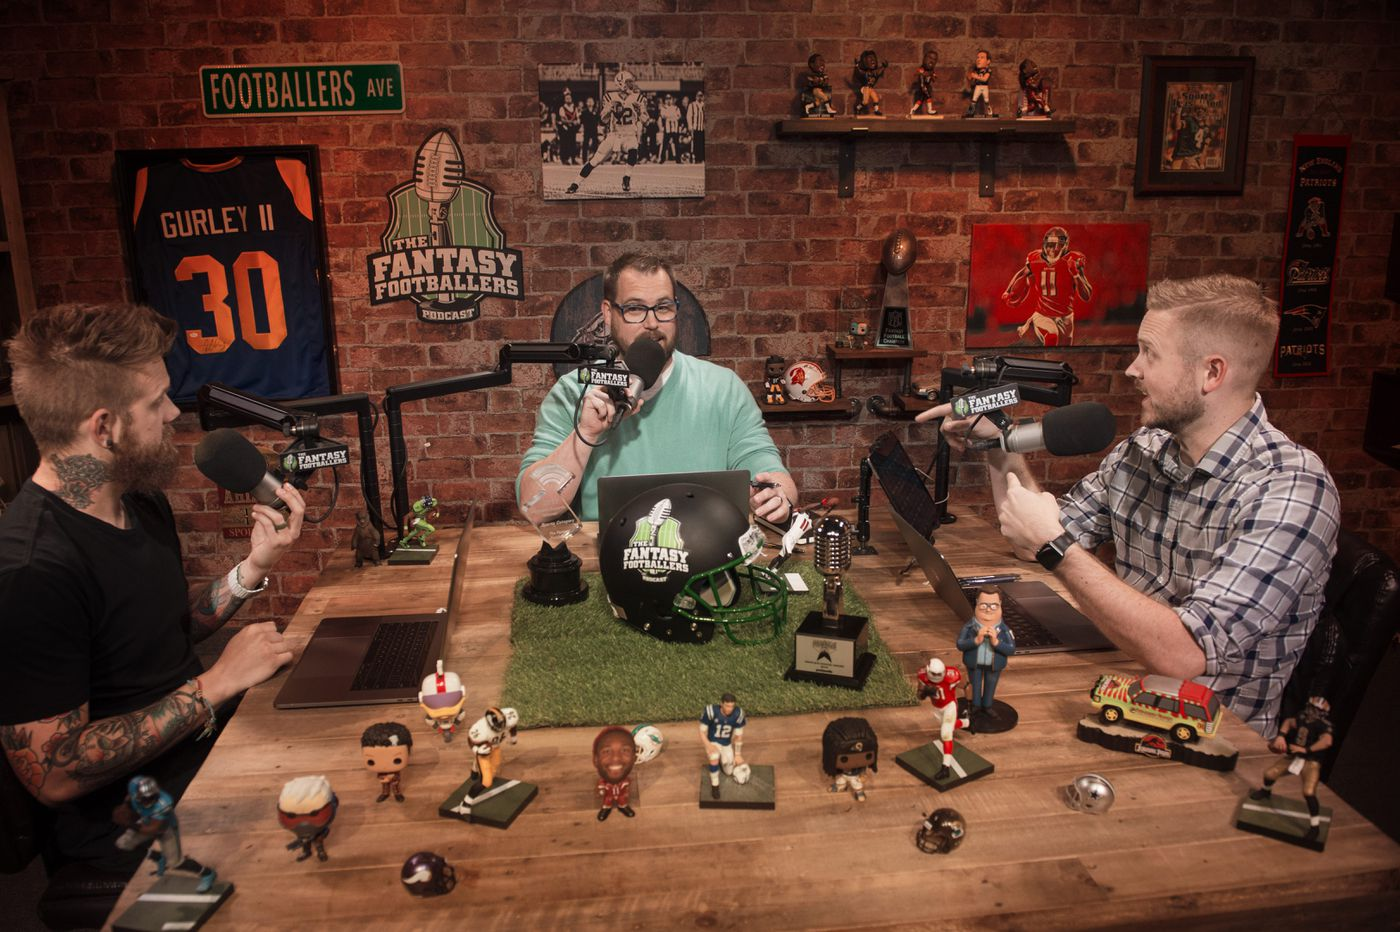 The Fantasy Footballers Podcast road show comes to Philly, and we share a clip of Dallas fans booing us at their Texas show